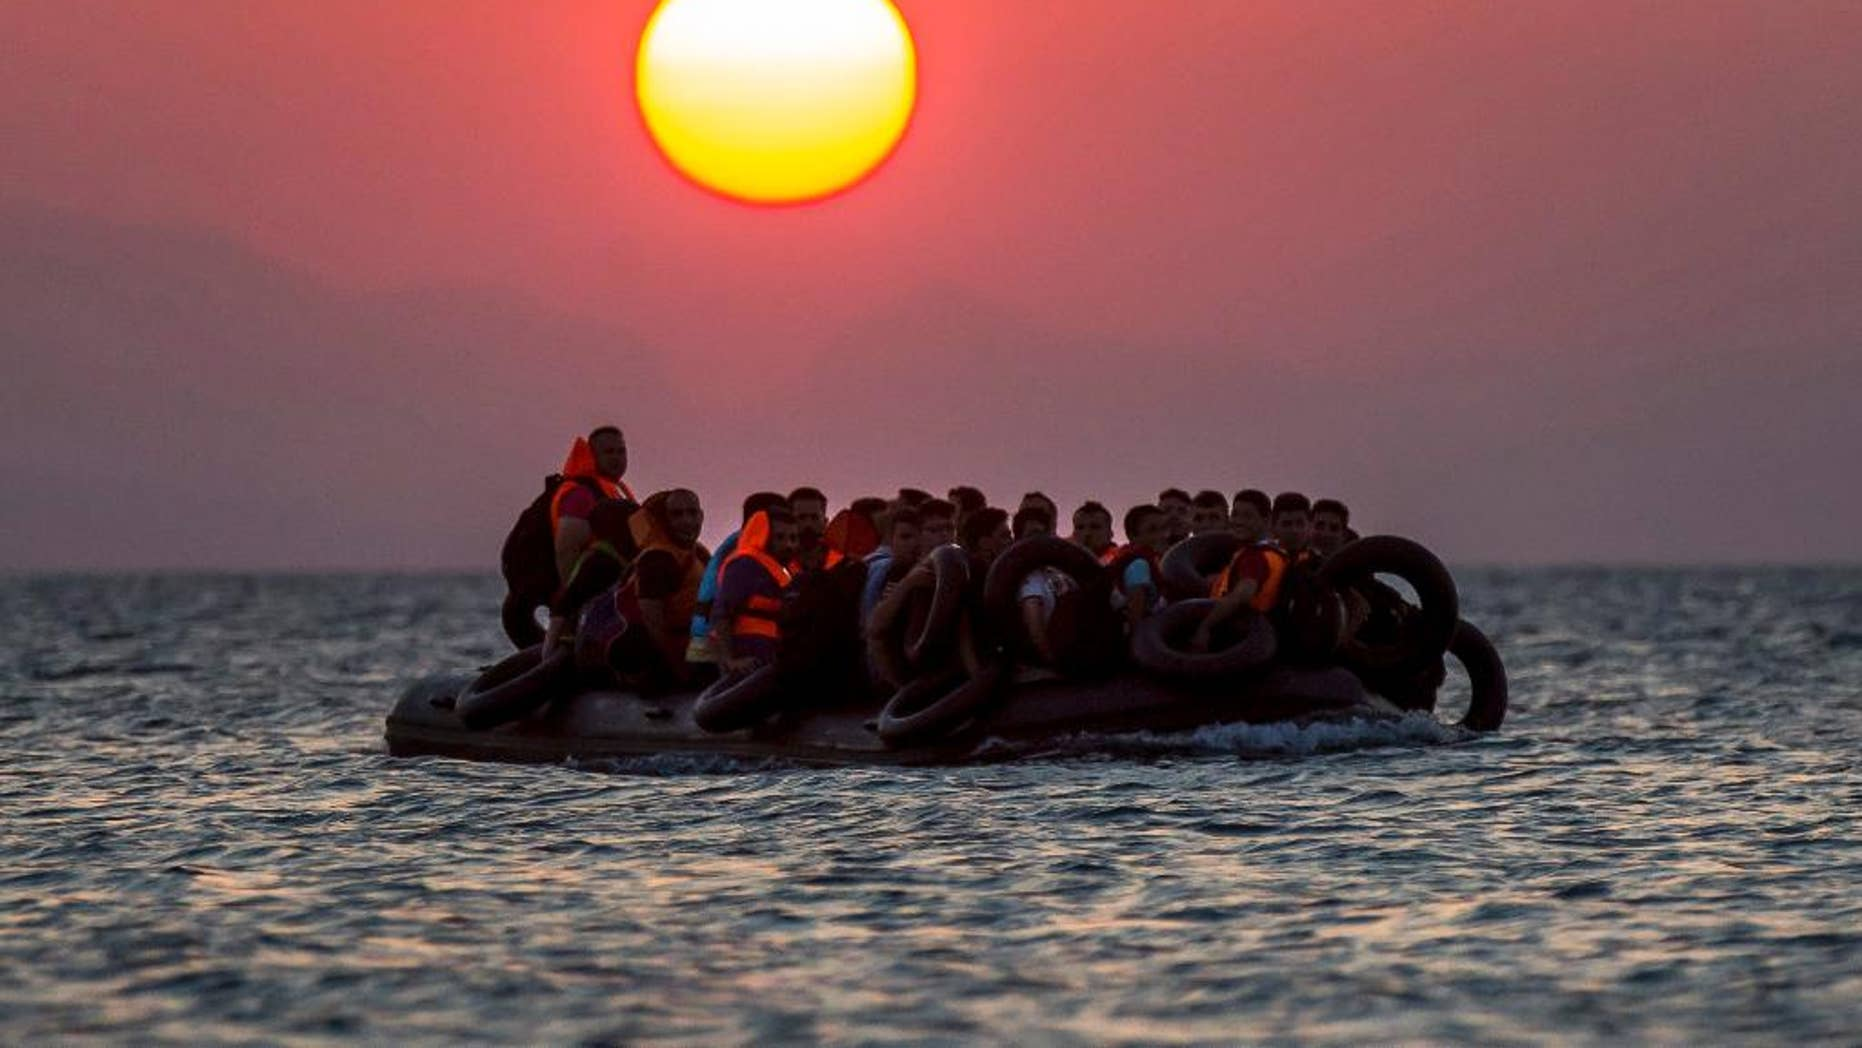 Refugeess on a dinghy approach the southeastern island of Kos, Greece, in August 2015.